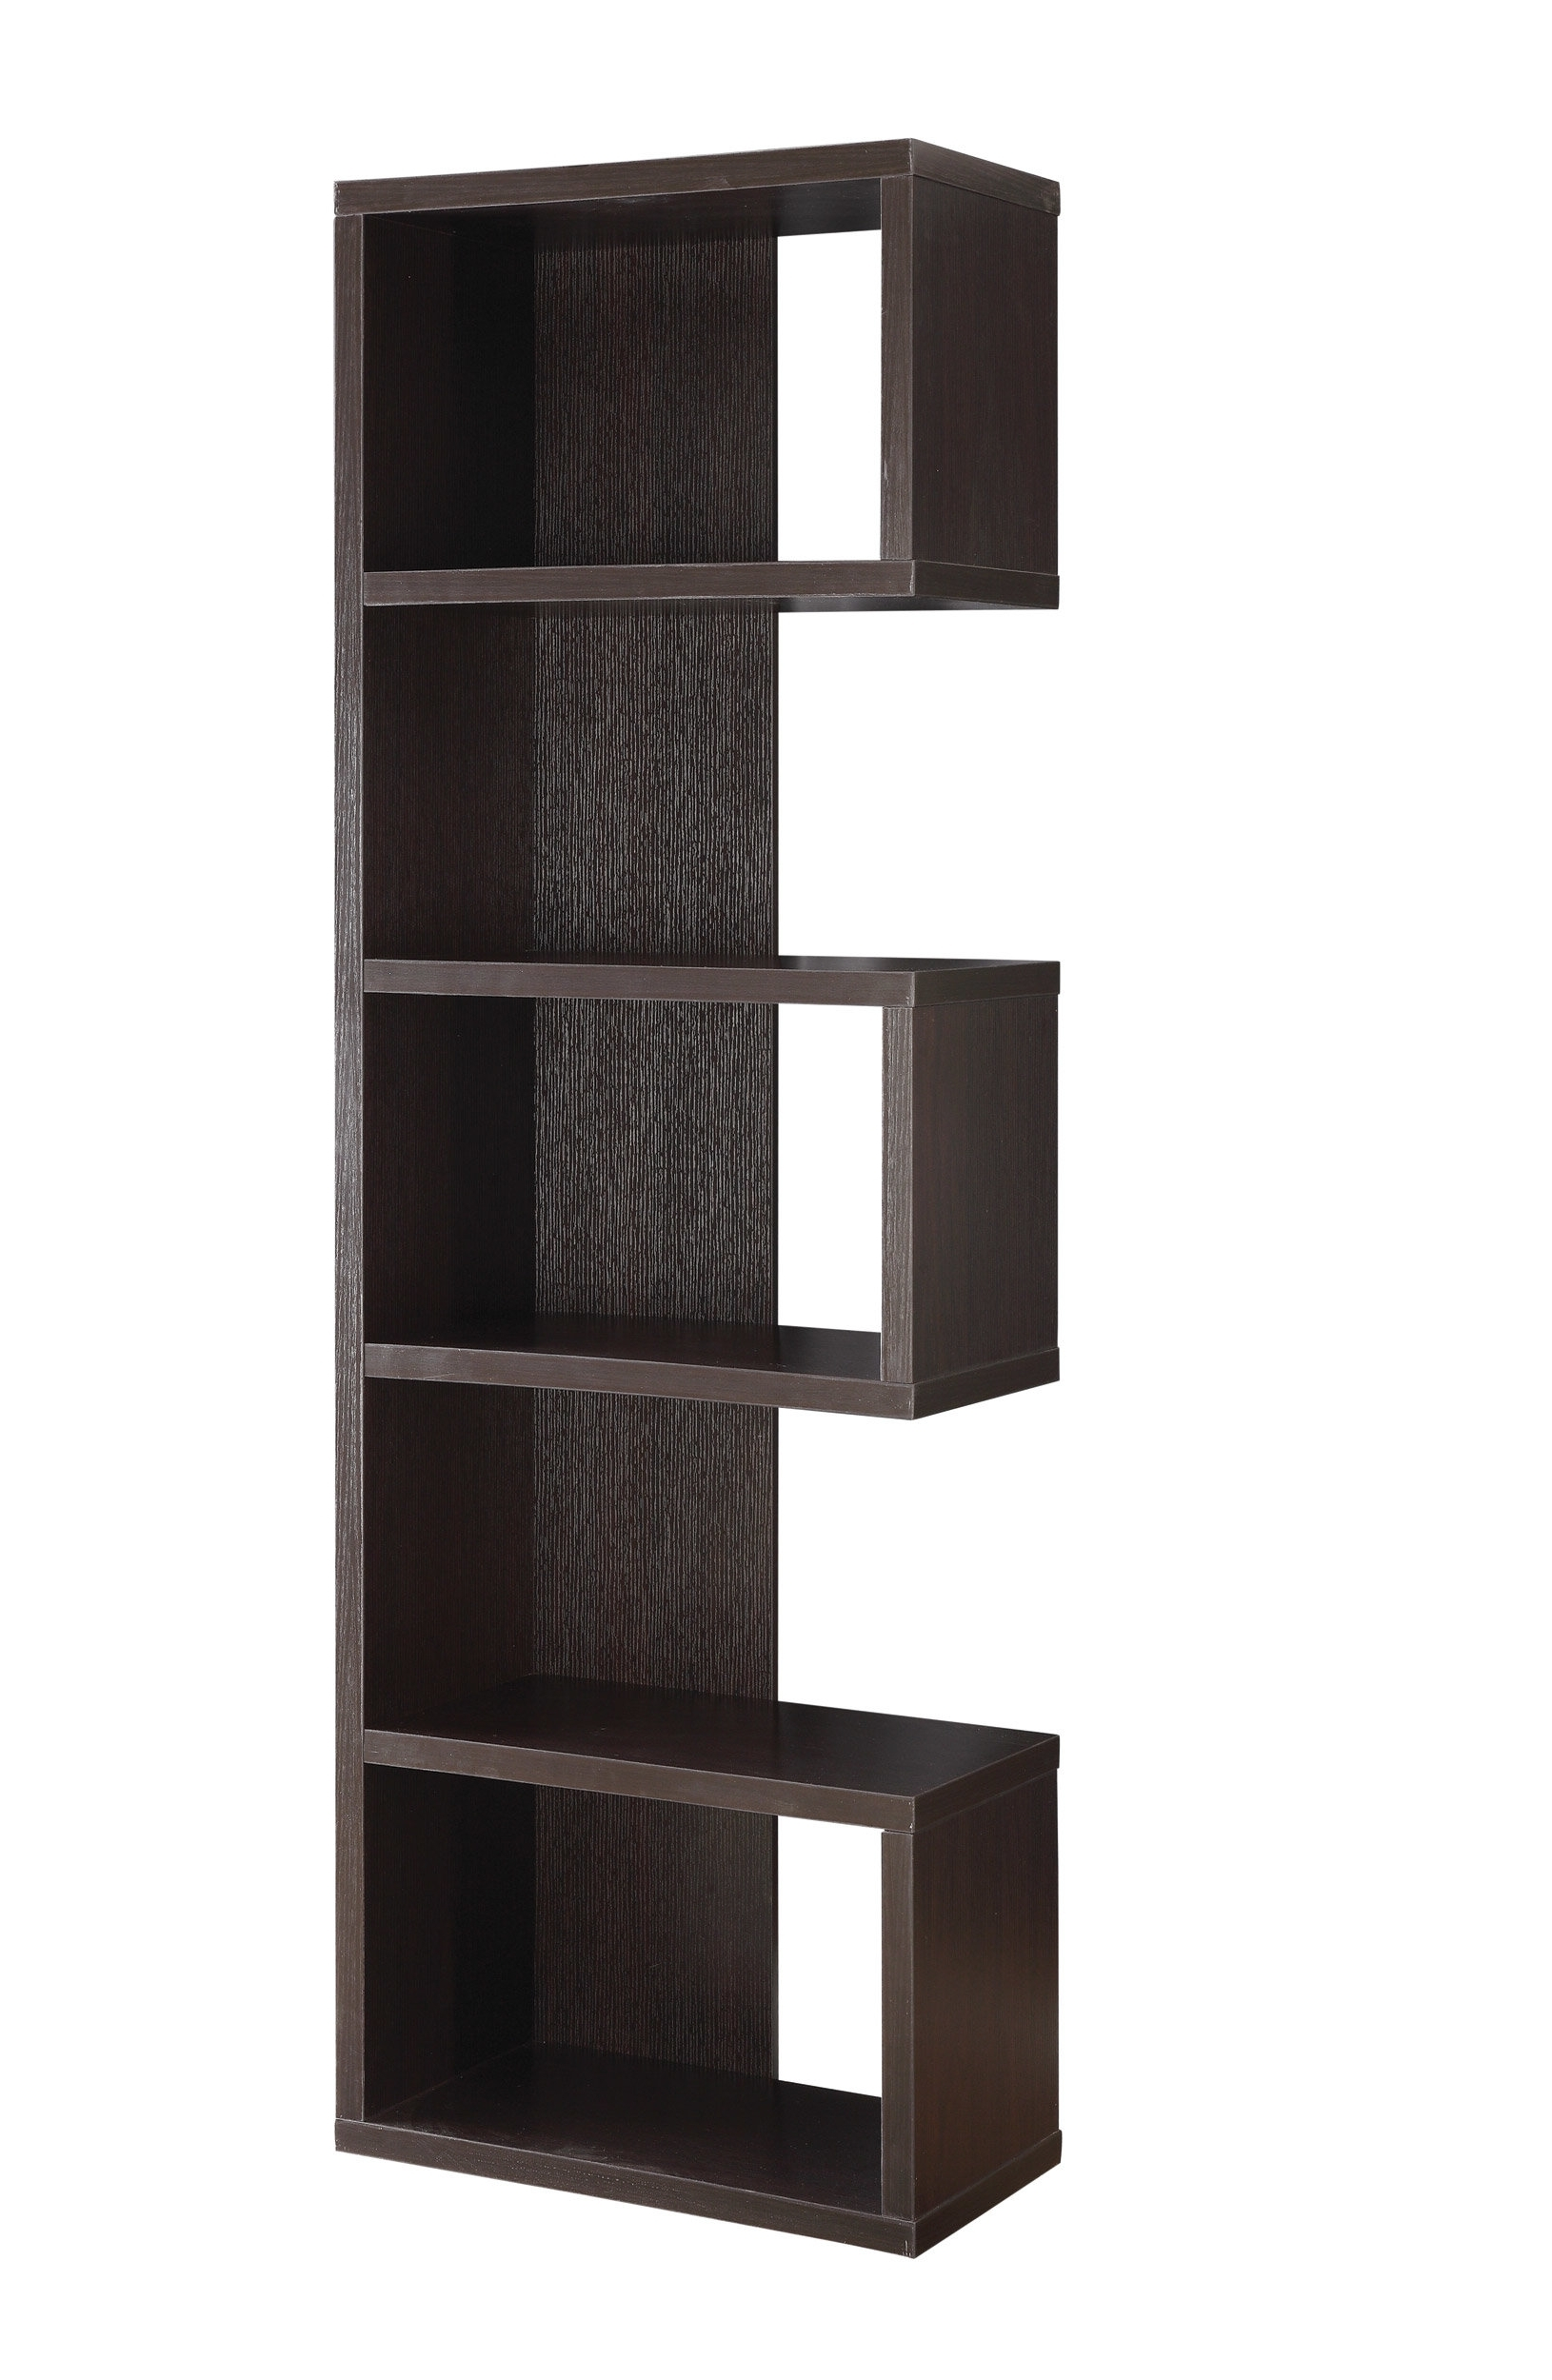 Well Liked Wildon Home Bookcases Intended For Wildon Home ® Cube Unit Bookcase & Reviews (View 14 of 15)